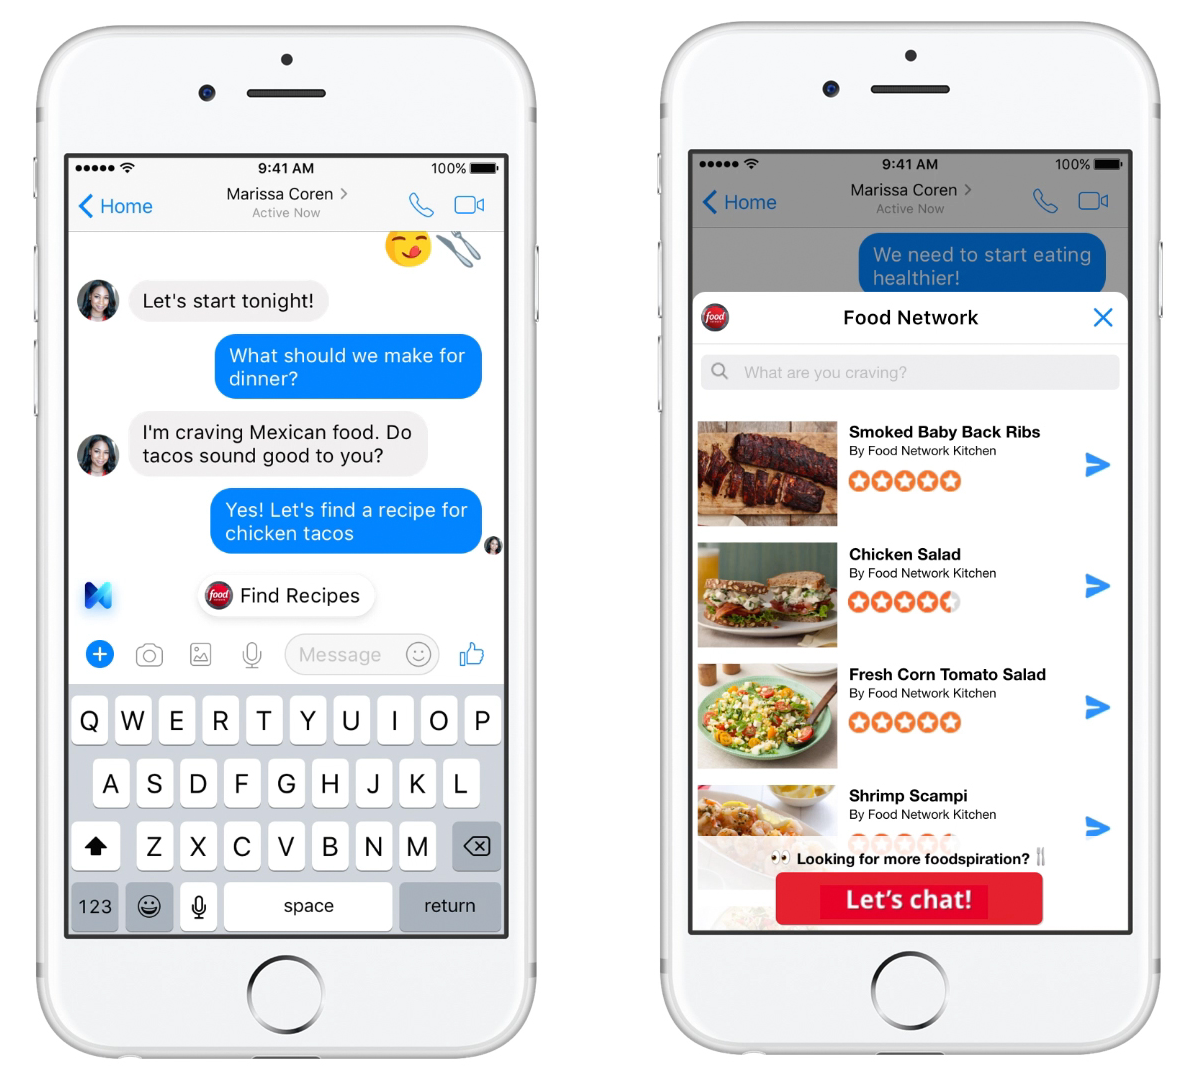 Facebook's M now serves up Food Network recipe suggestions